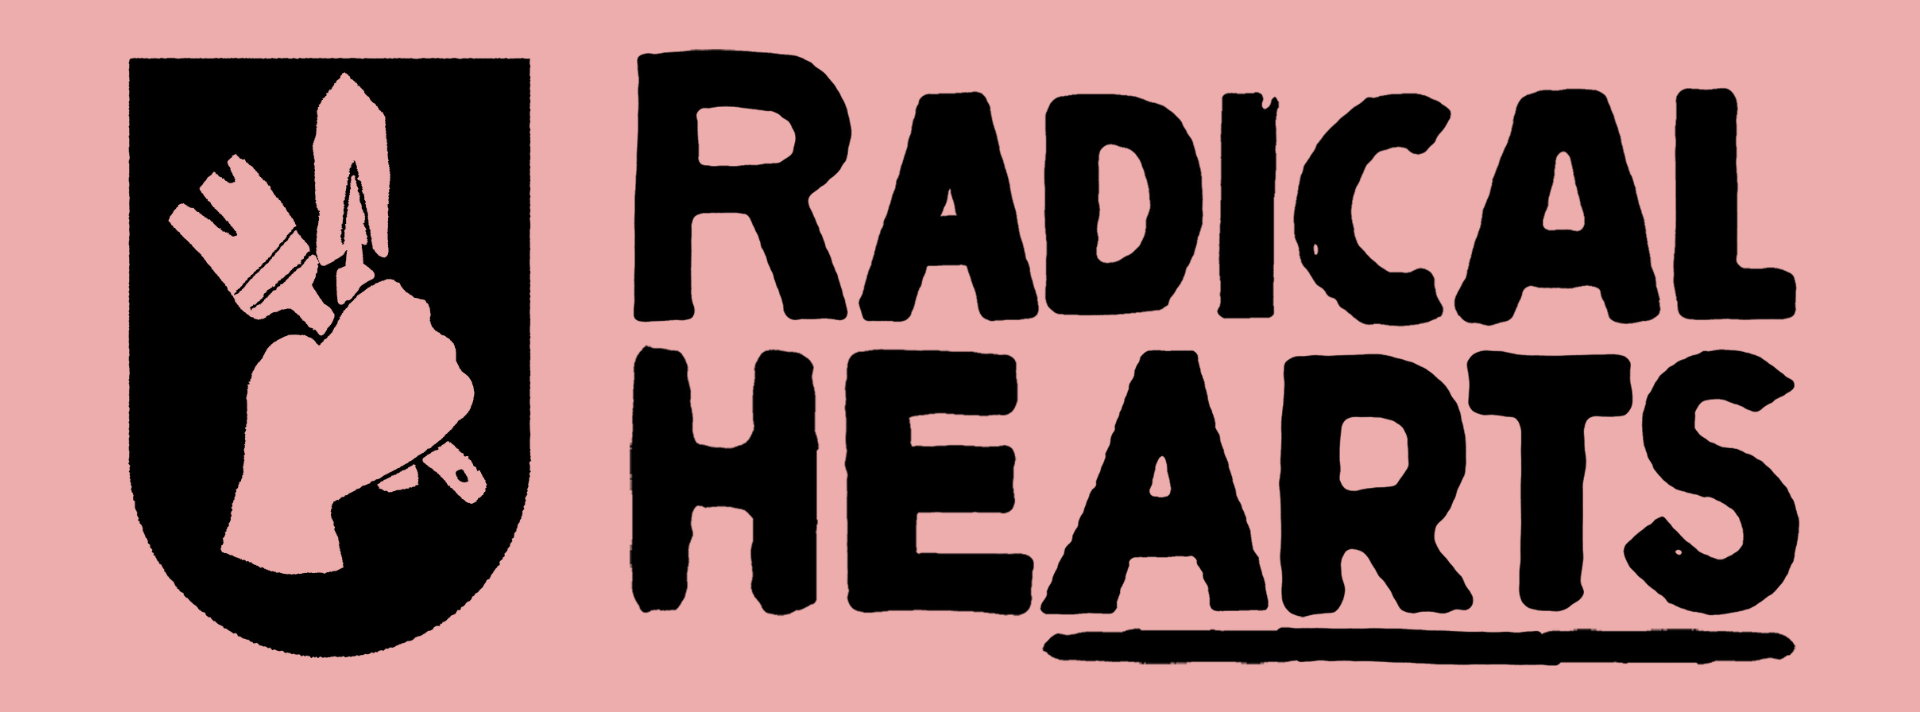 Radical hearts logo: A monochromatic fist holding a gardening spade and artist's brush next to the bold words RADICAL HEARTS (landing page)